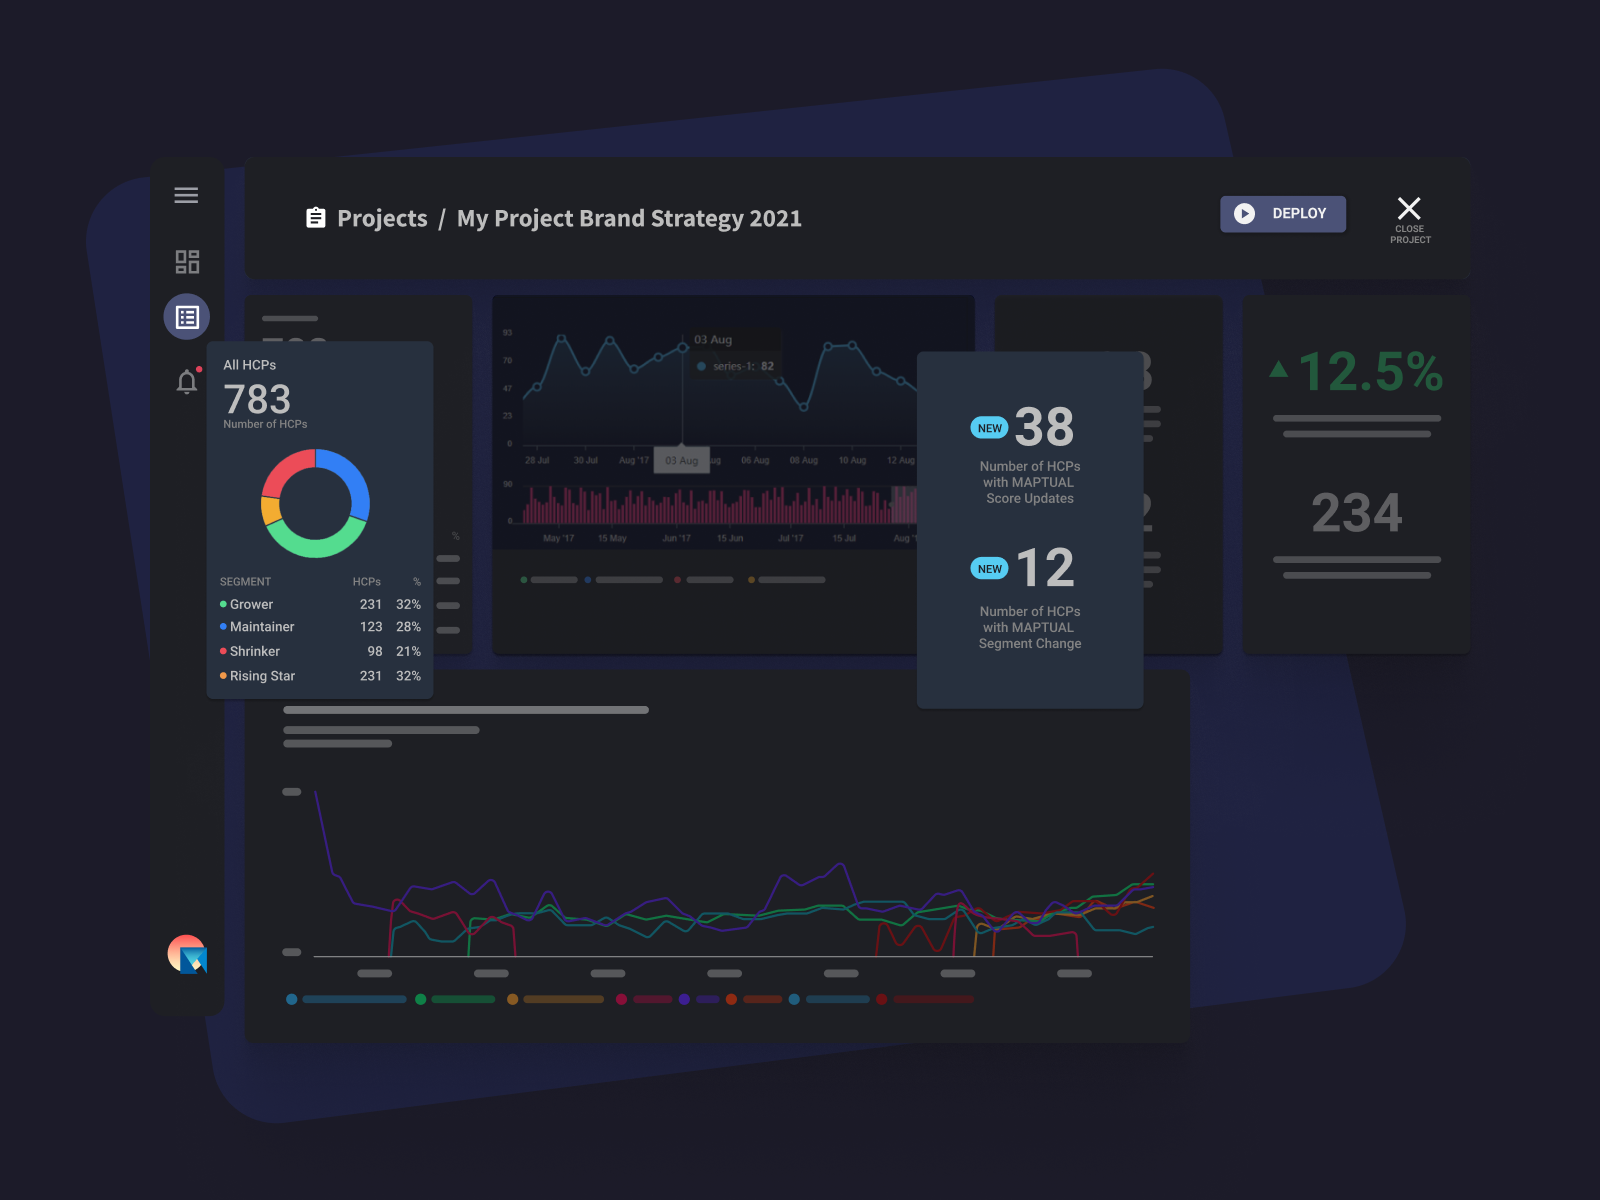 Shows elements of the MAPTUAL dashboard with pharma related  analytics